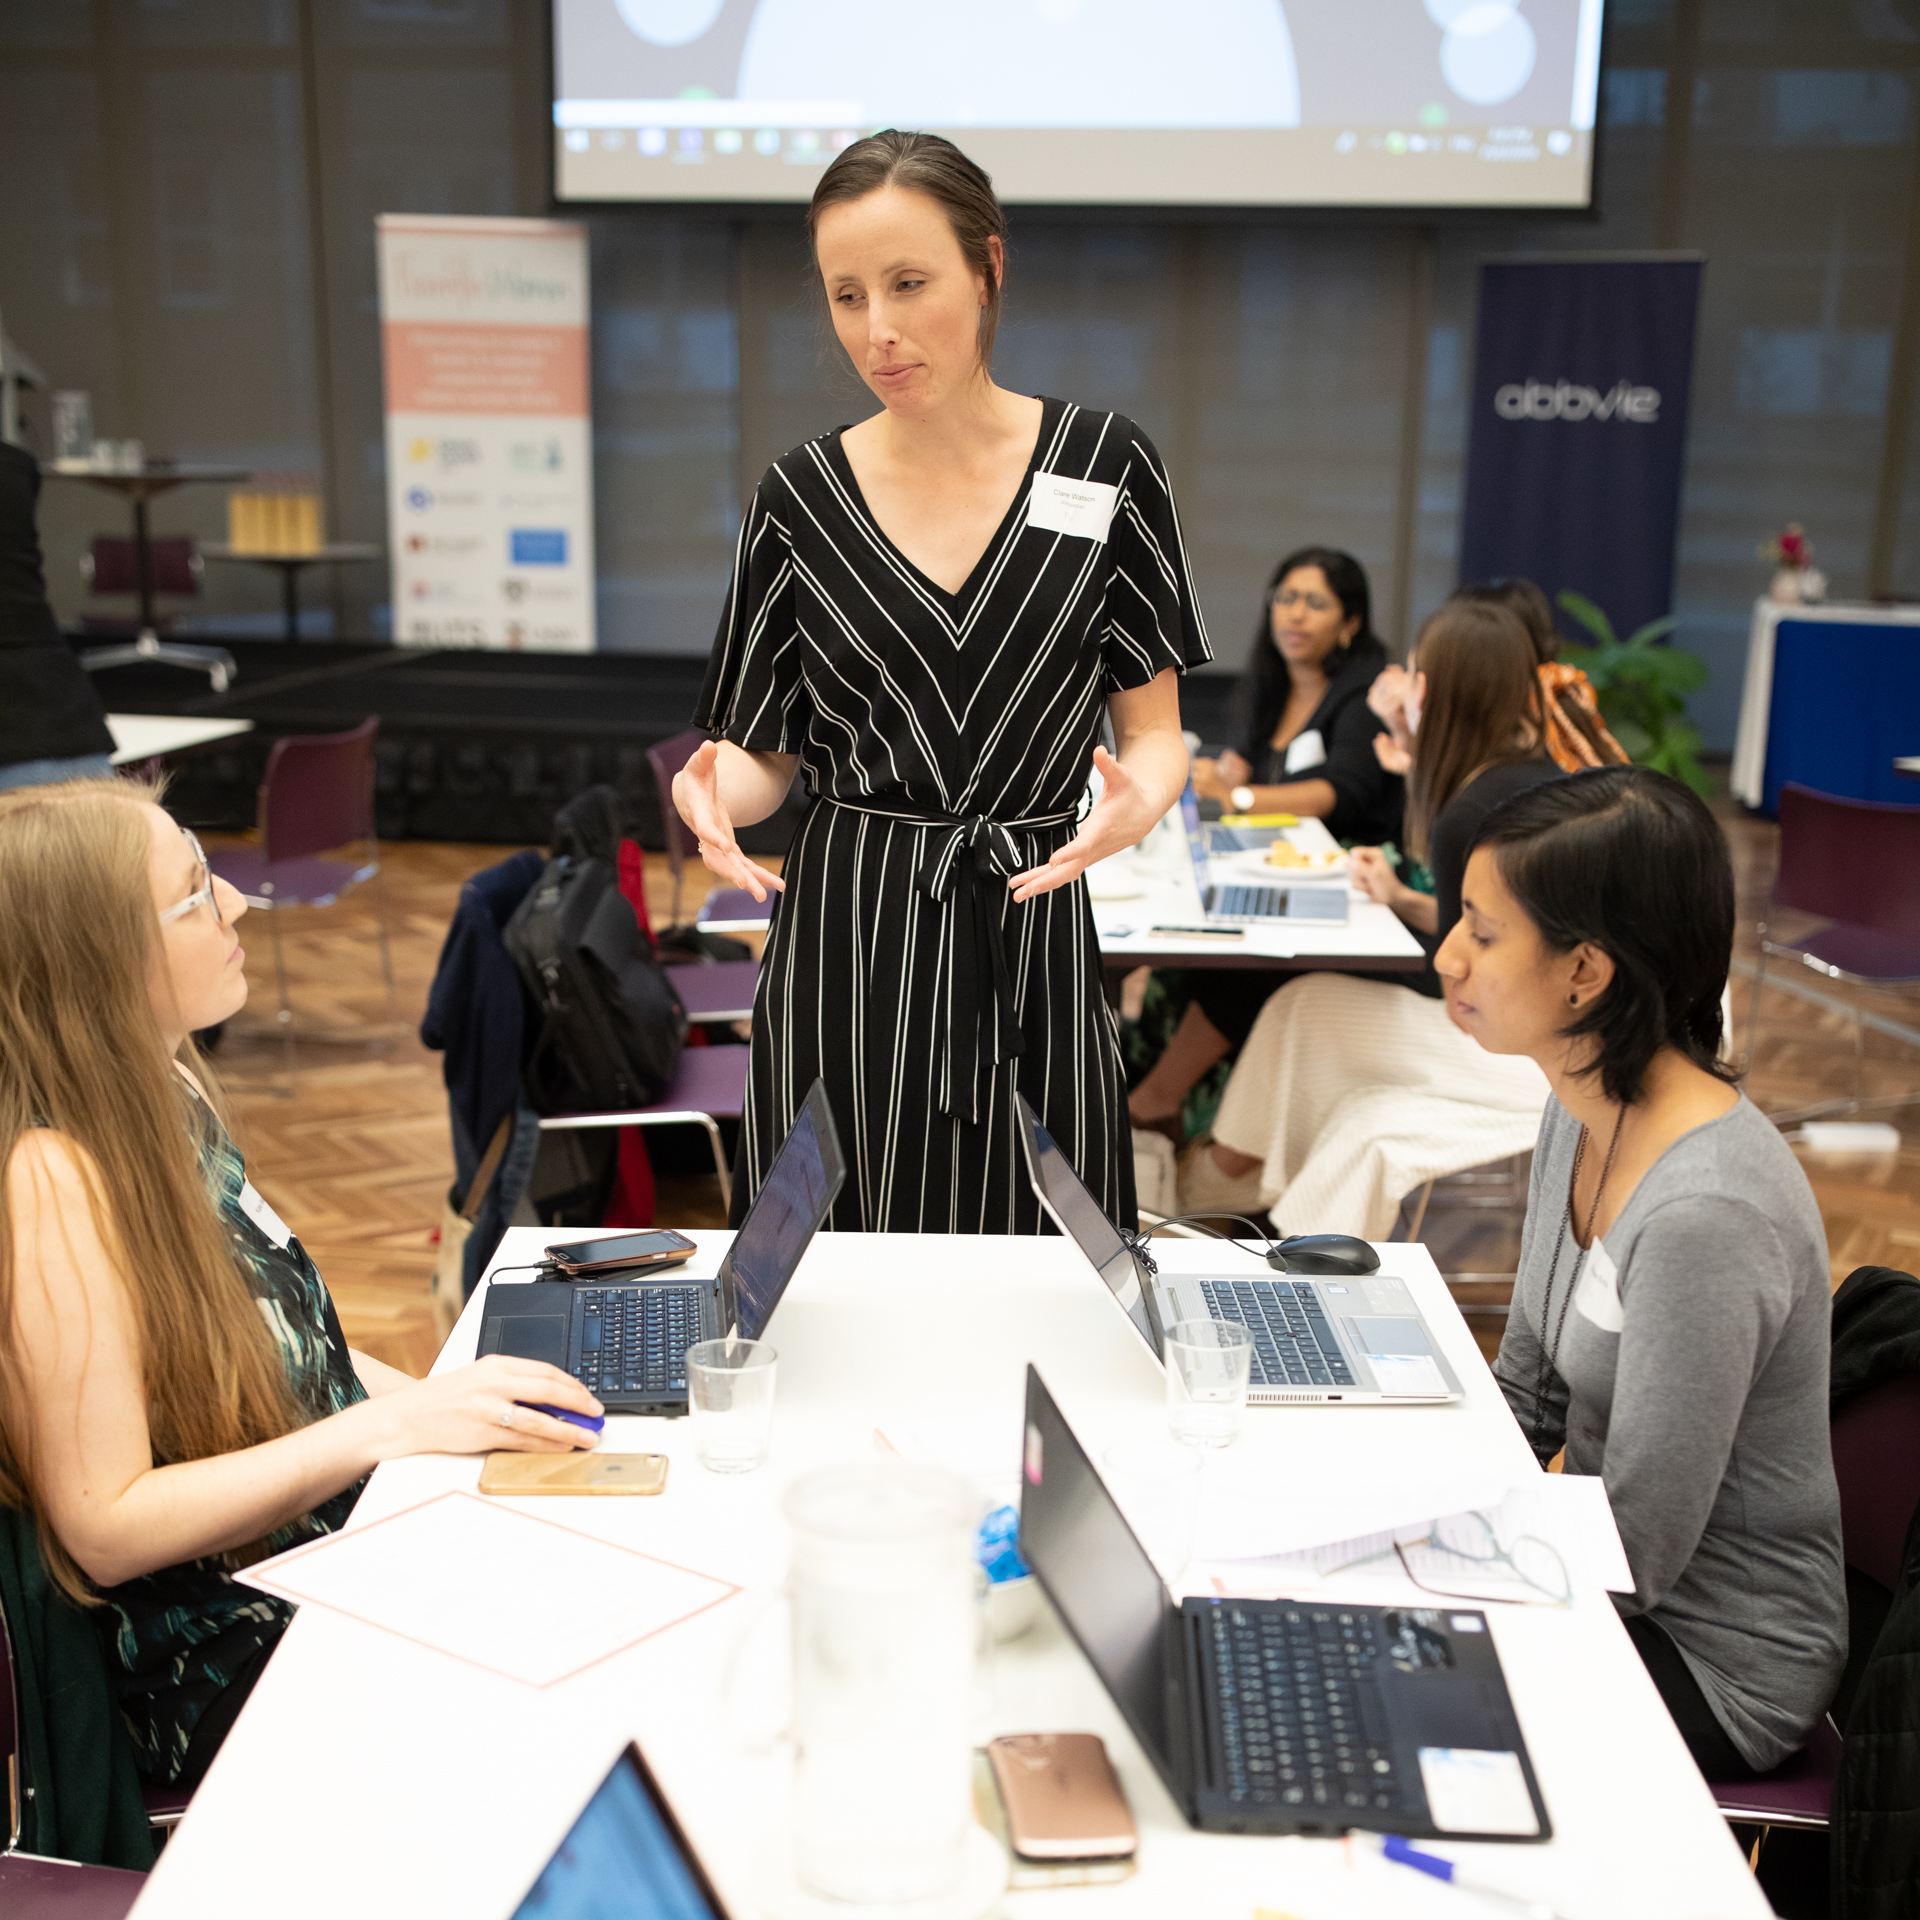 Franklin Women hosted a Wikipedia Edit-a-thon in July 2019 to boost the number of Australian women in science represented on the open access online encyclopaedia.